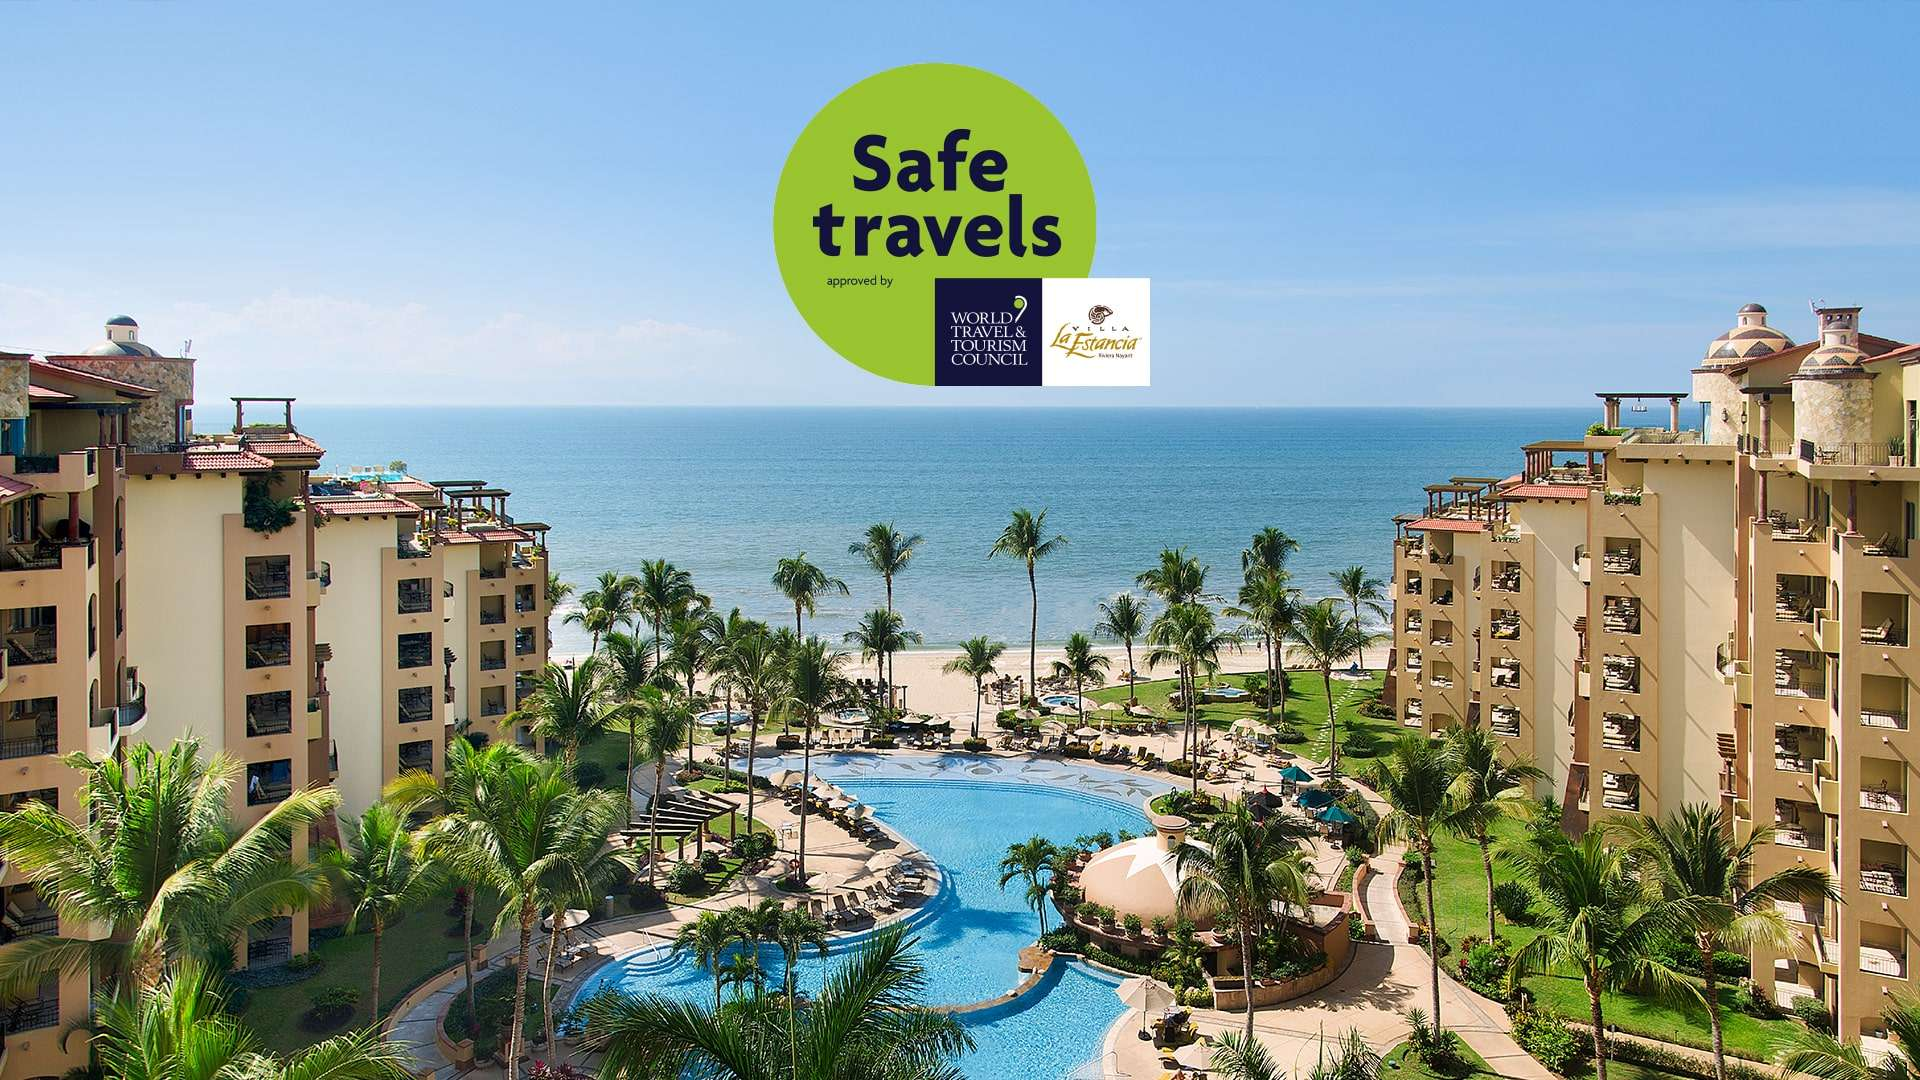 Villa La Estancia Beach Resort   Spa Riviera Nayarit Earns Wttc Safe Travels Stamp